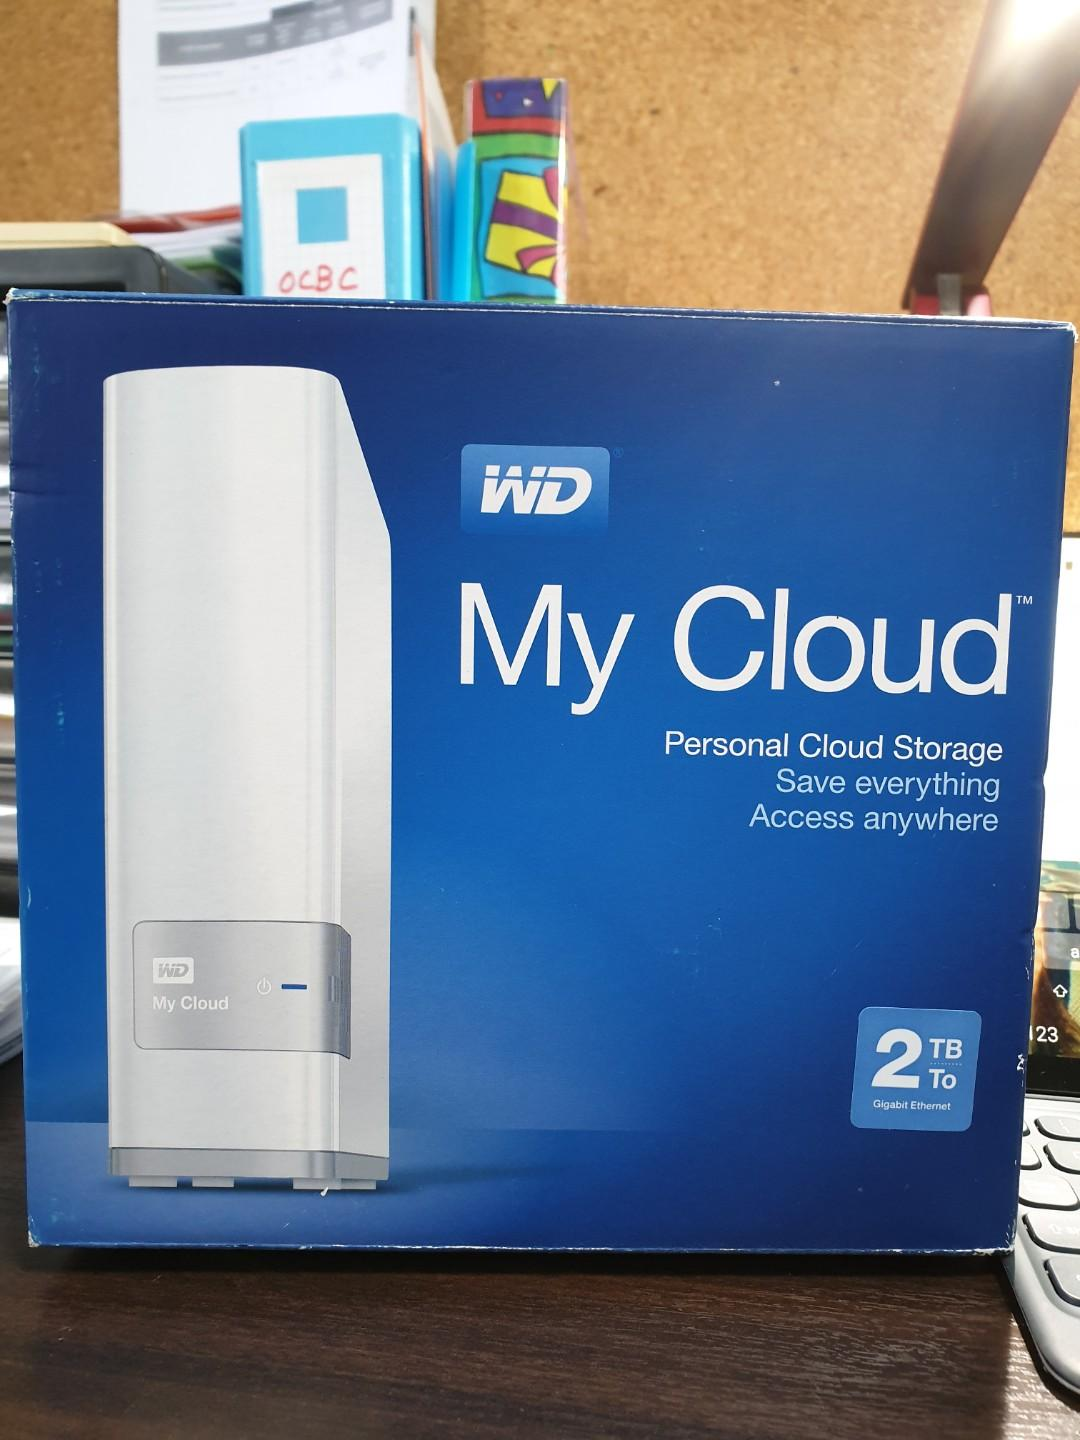 My Cloud- your personal cloud storage